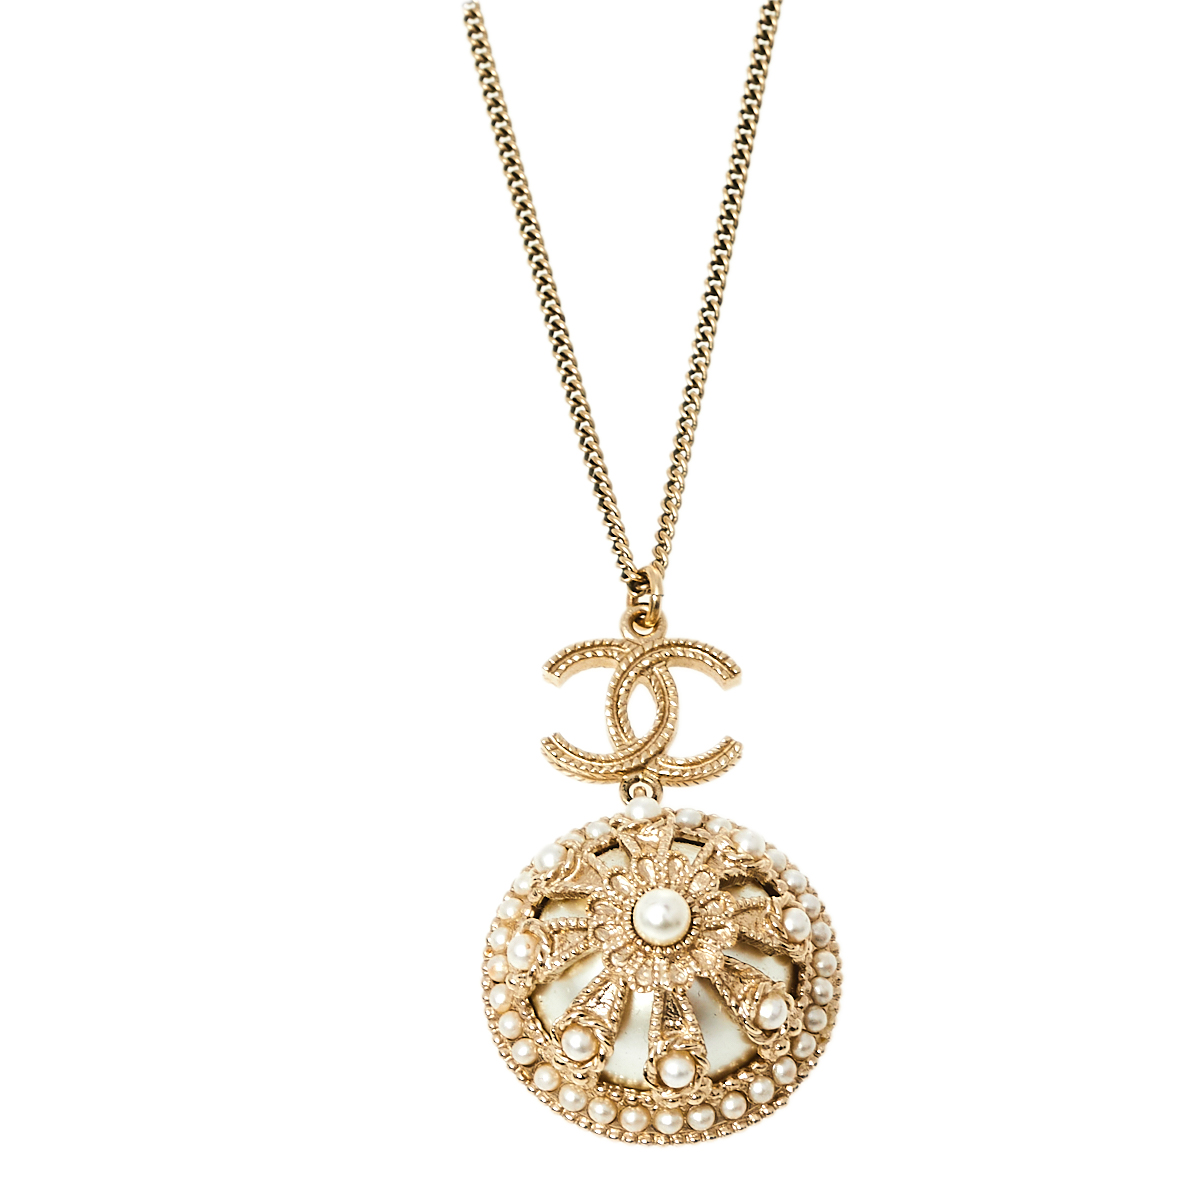 Pre-owned Chanel Gold Tone Faux Pearl Floral Dome Pendant Chain Necklace